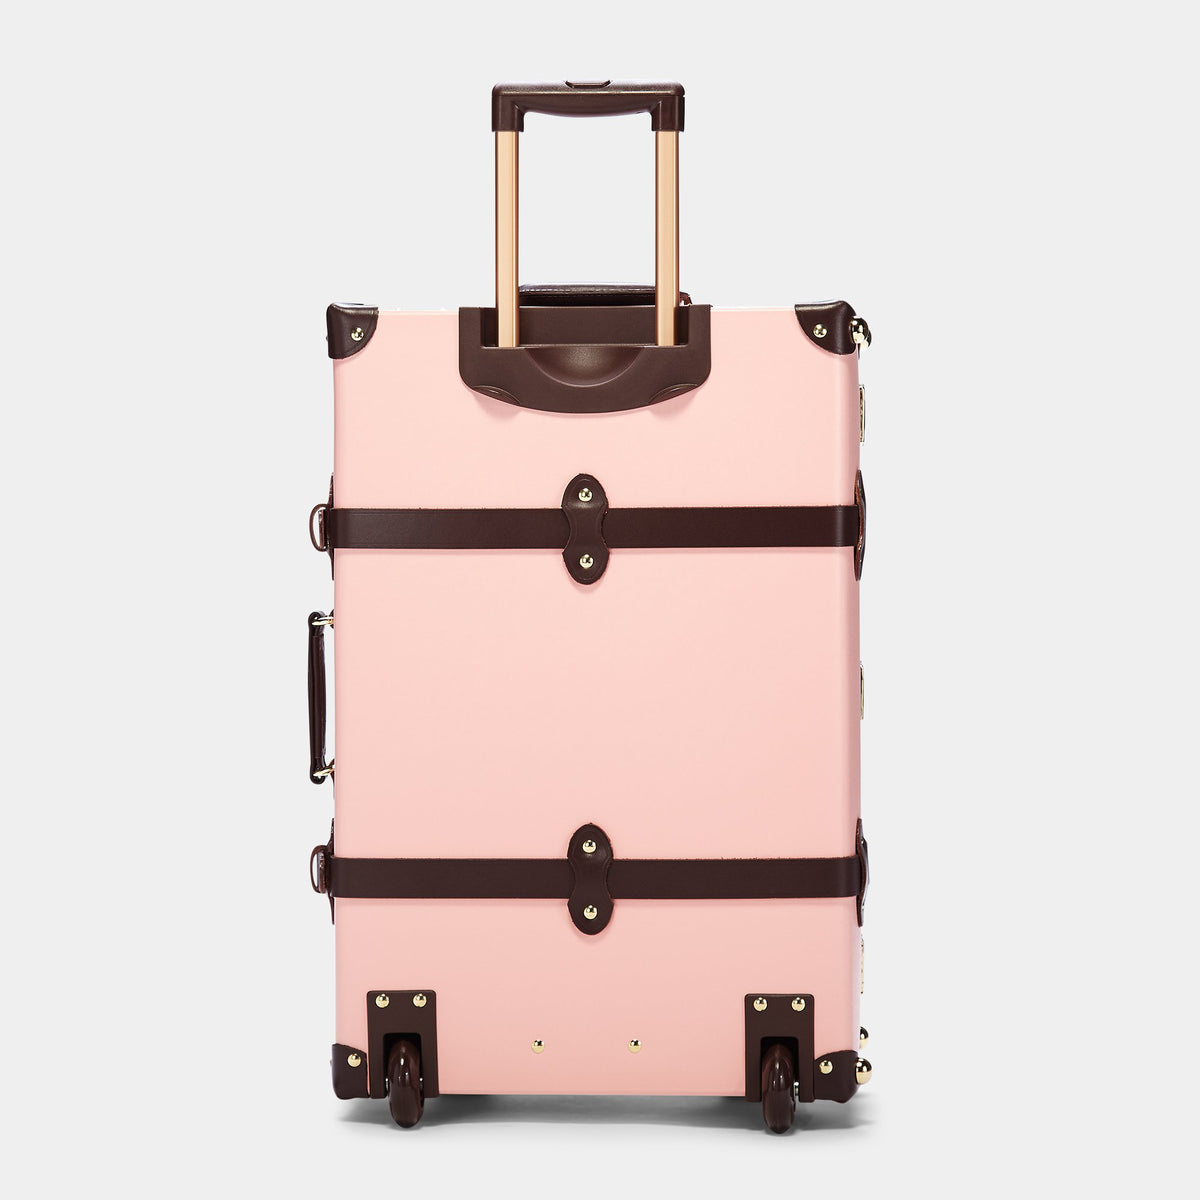 The Artiste Stowaway in Pink - Old Fashioned Suitcase - Exterior Back with Extendable Handle